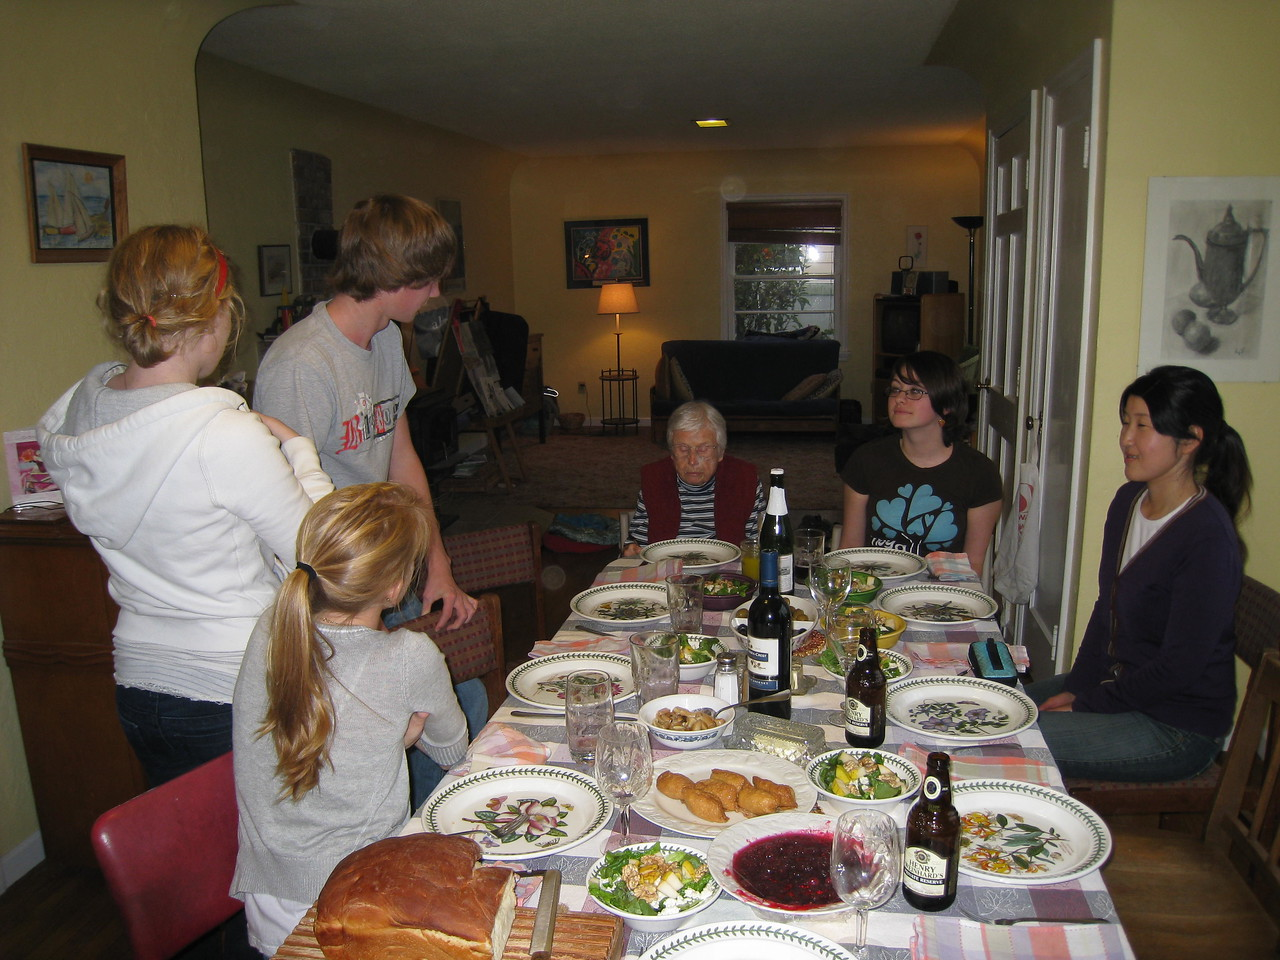 This year we had another great Thanksgiving meal with the Phil, Susie, Jean, Carrie, Nick & Amy. Martin & Jenifer joined us later in the afternoon.